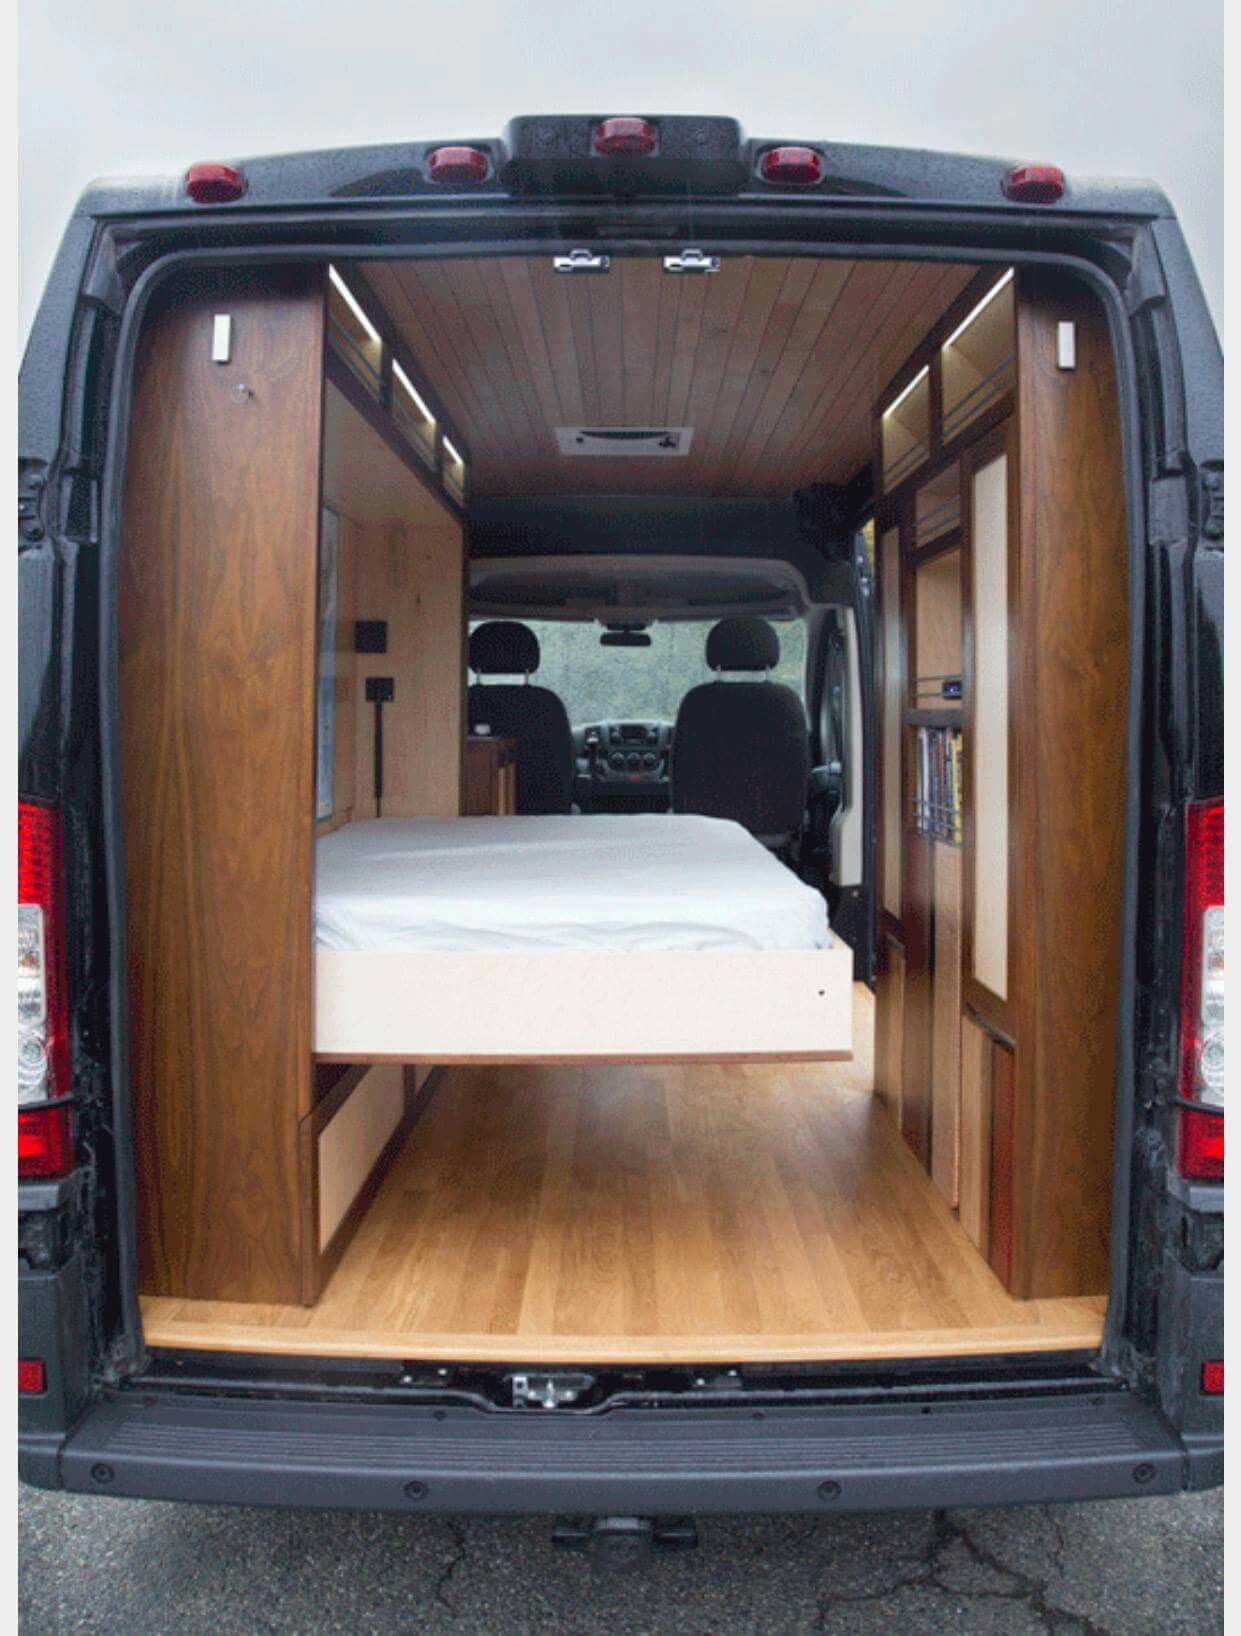 d4a7ceeafc Murphy bed for a van - Imgur  carcampingbedvehicle  carcampingbedideas  Campervan Storage Ideas